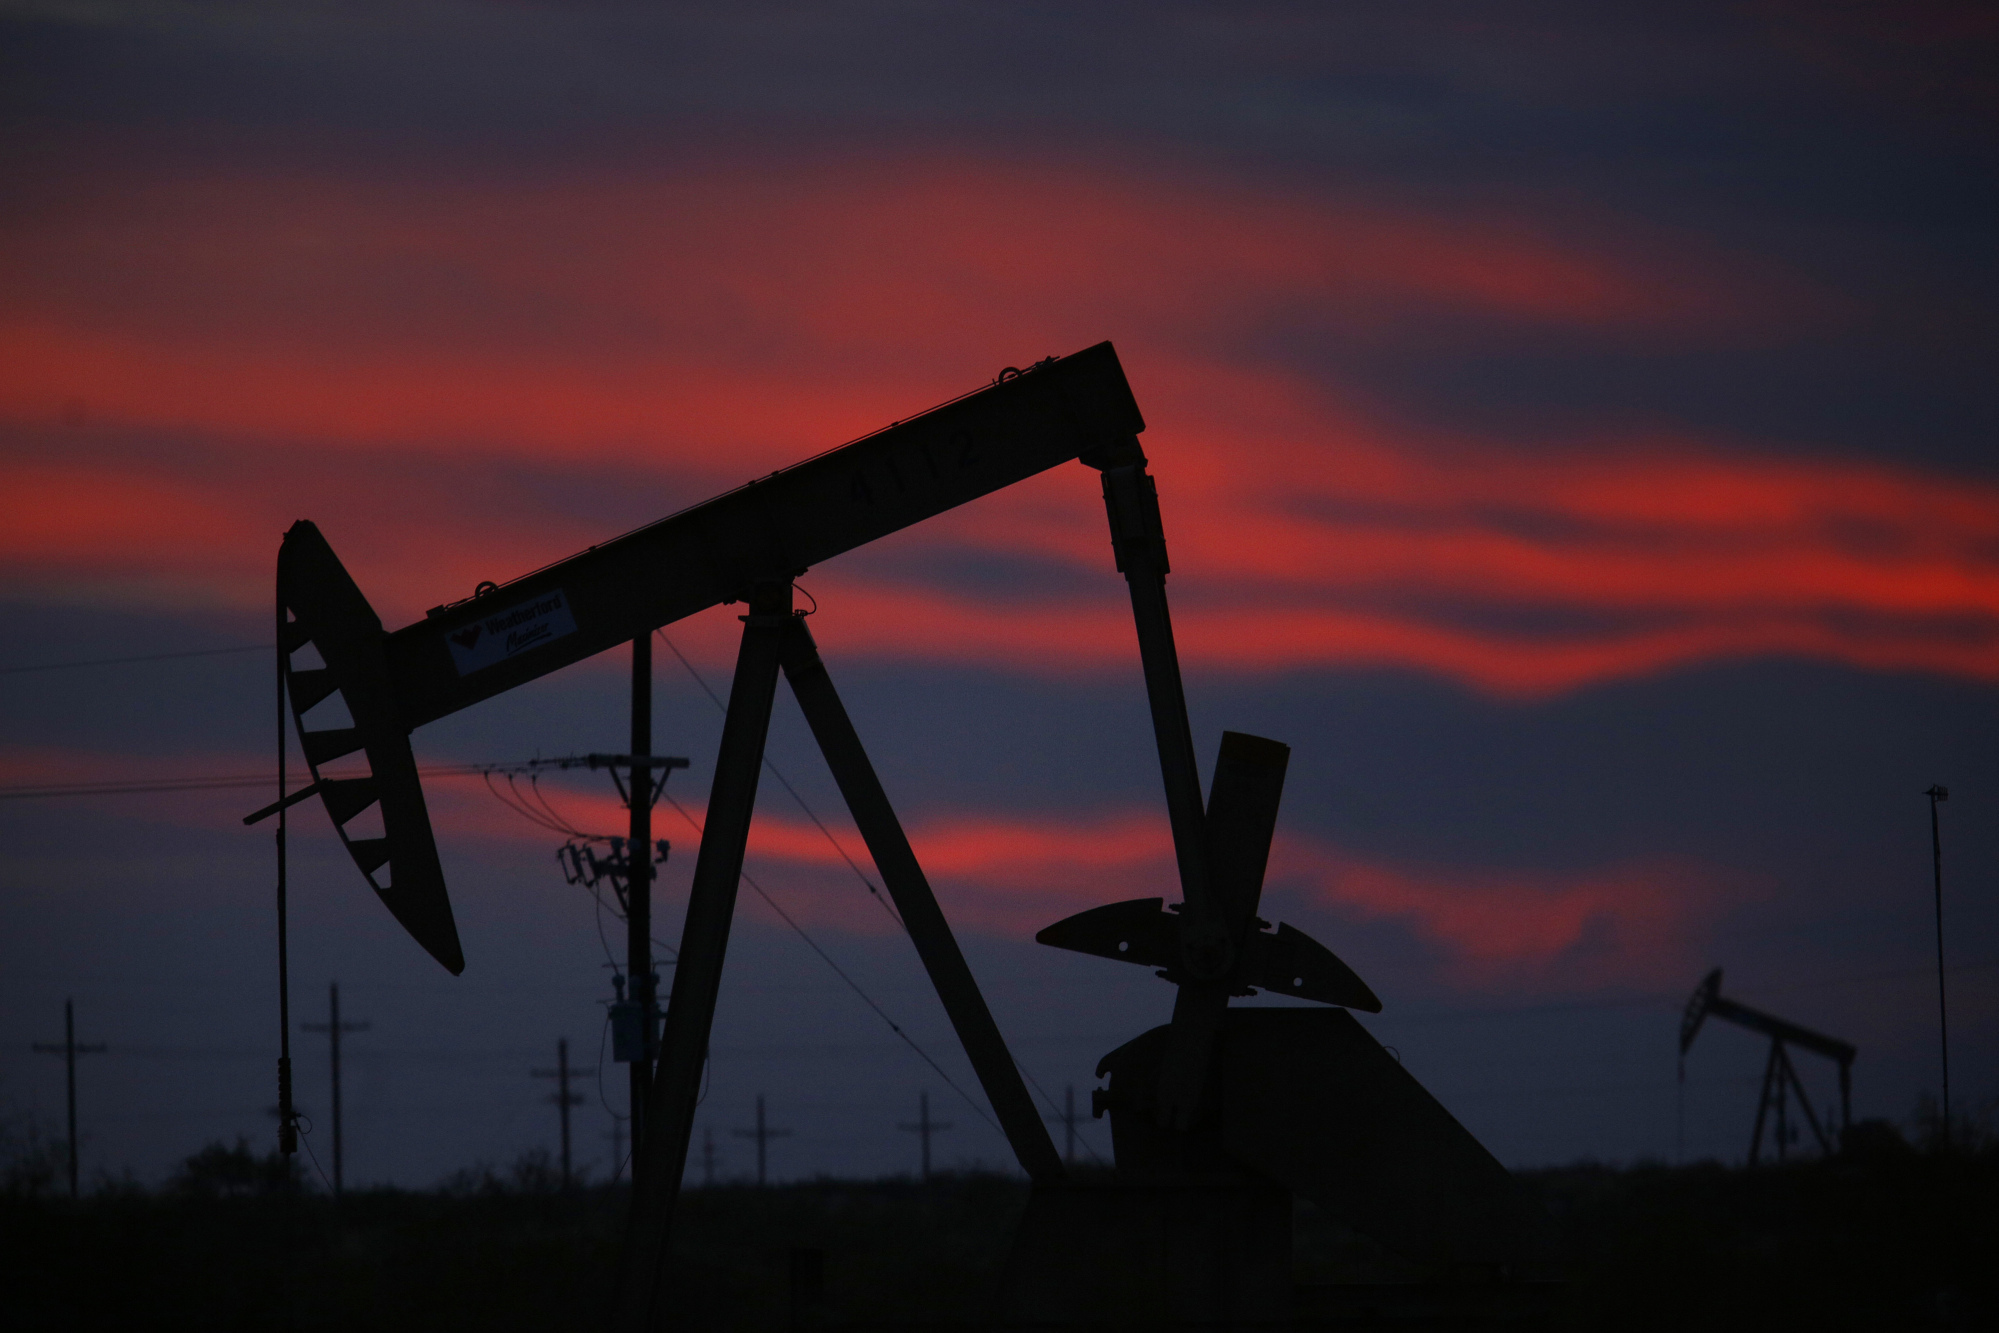 The silhouette of an electric oil pump jack is seen at dusk in the oil fields surrounding Midland, Texas, U.S., on Tuesday, Nov. 7, 2017. Photographer: Luke Sharrett/Bloomberg